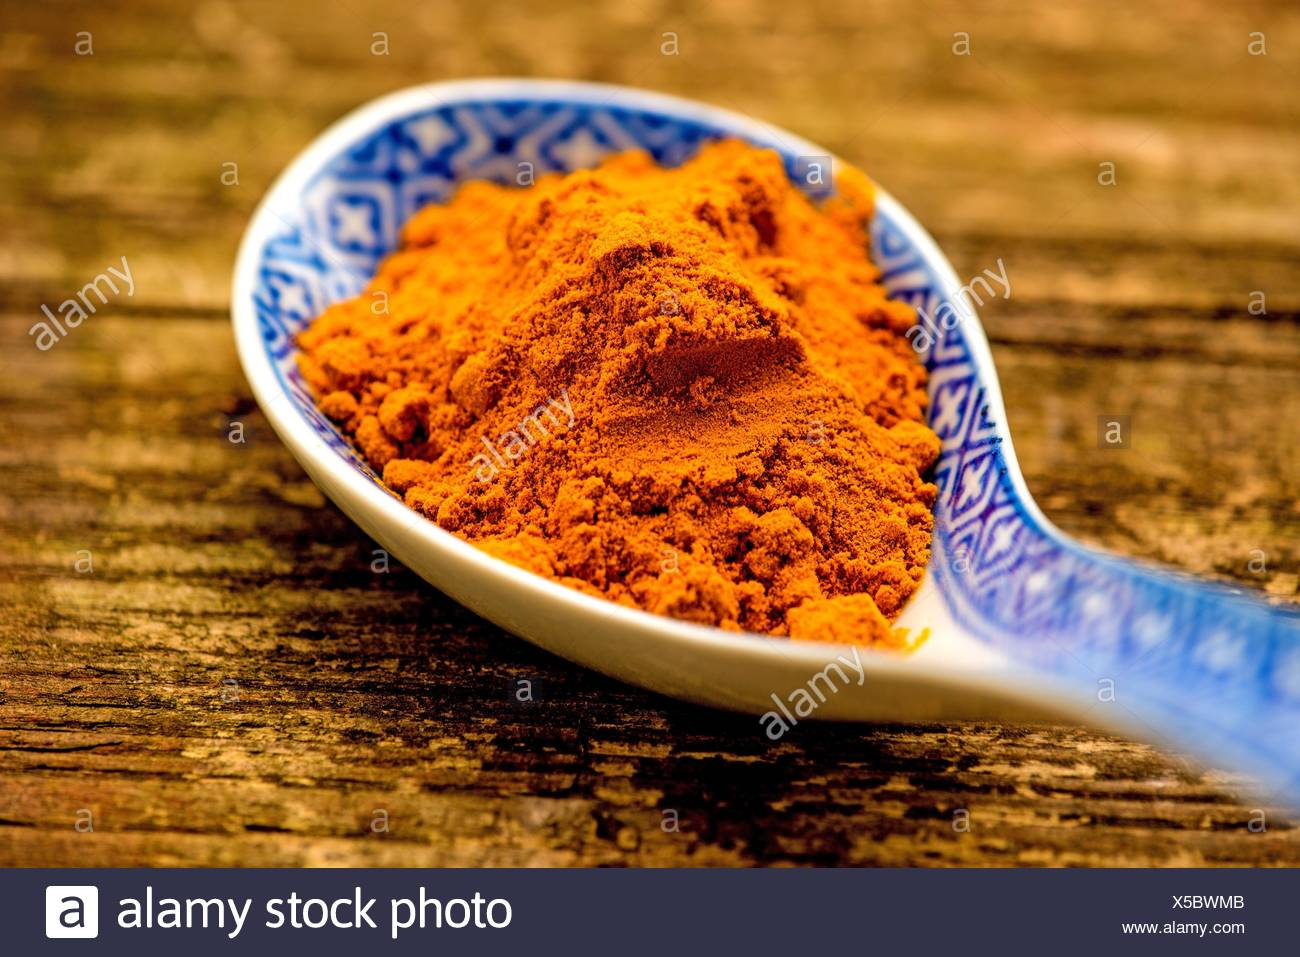 turmeric powder on a spoon. - Stock Image